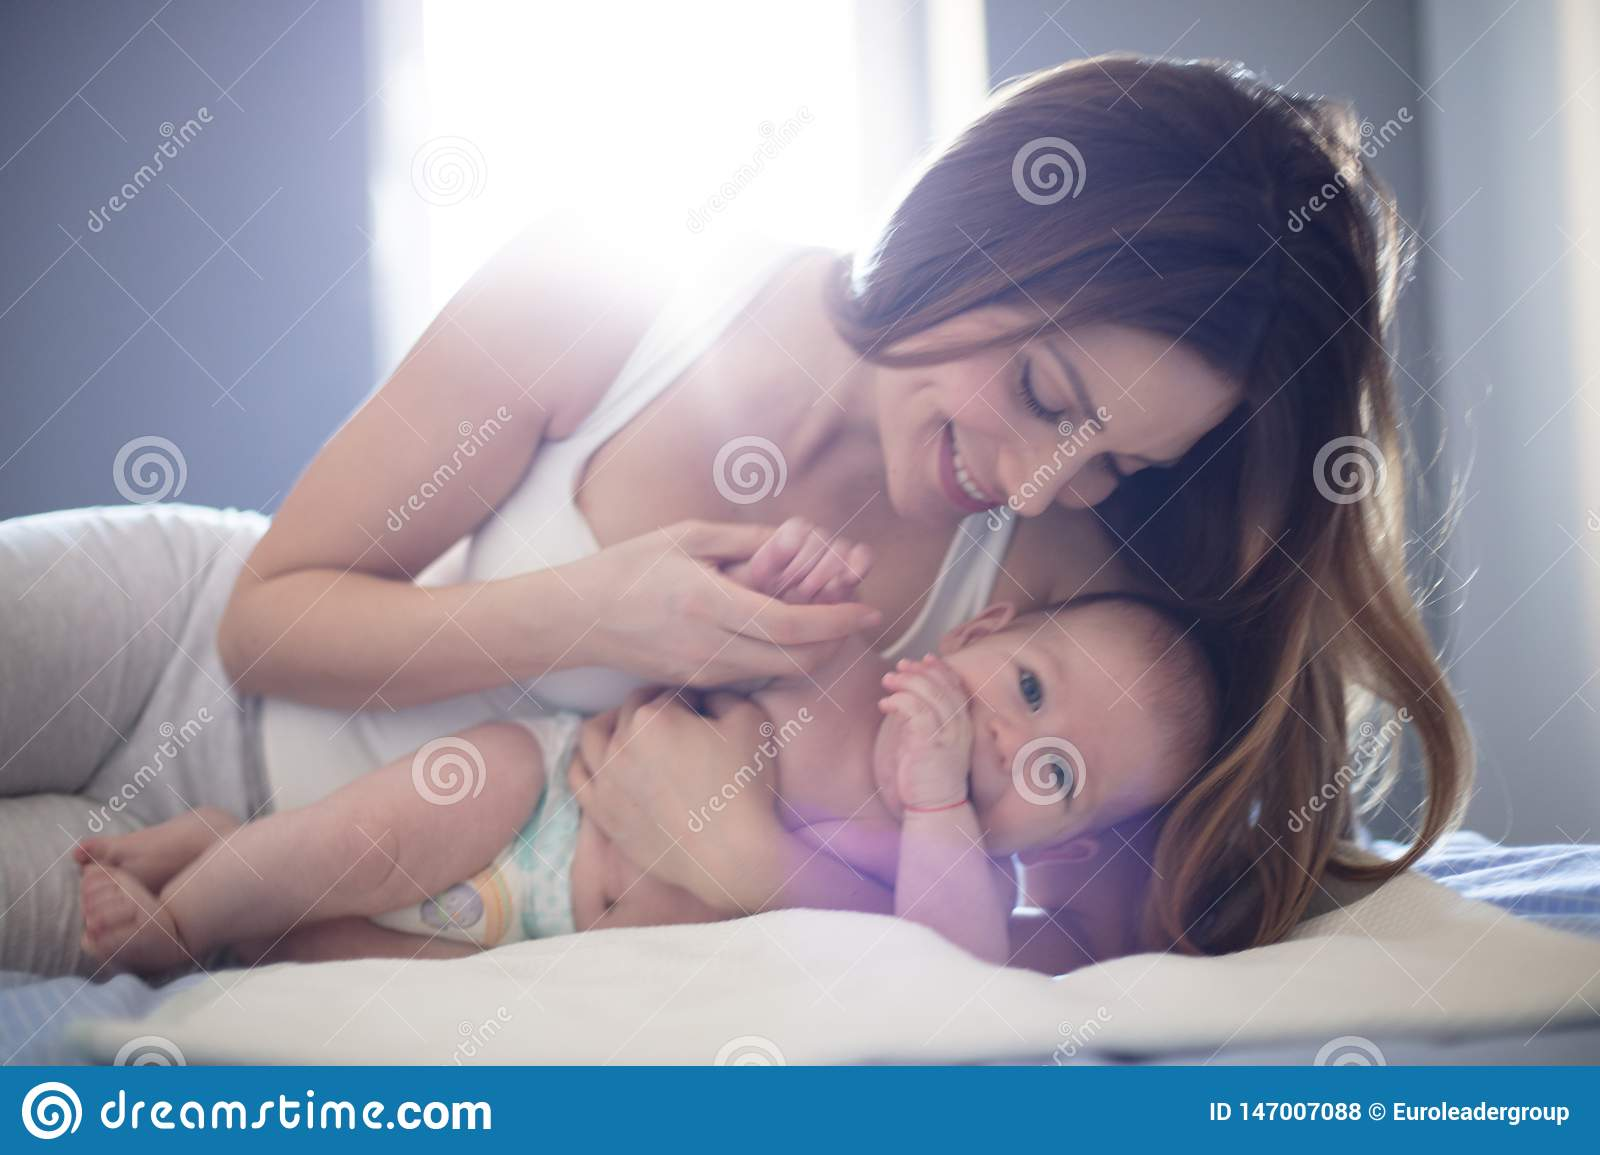 Tender moments with mom